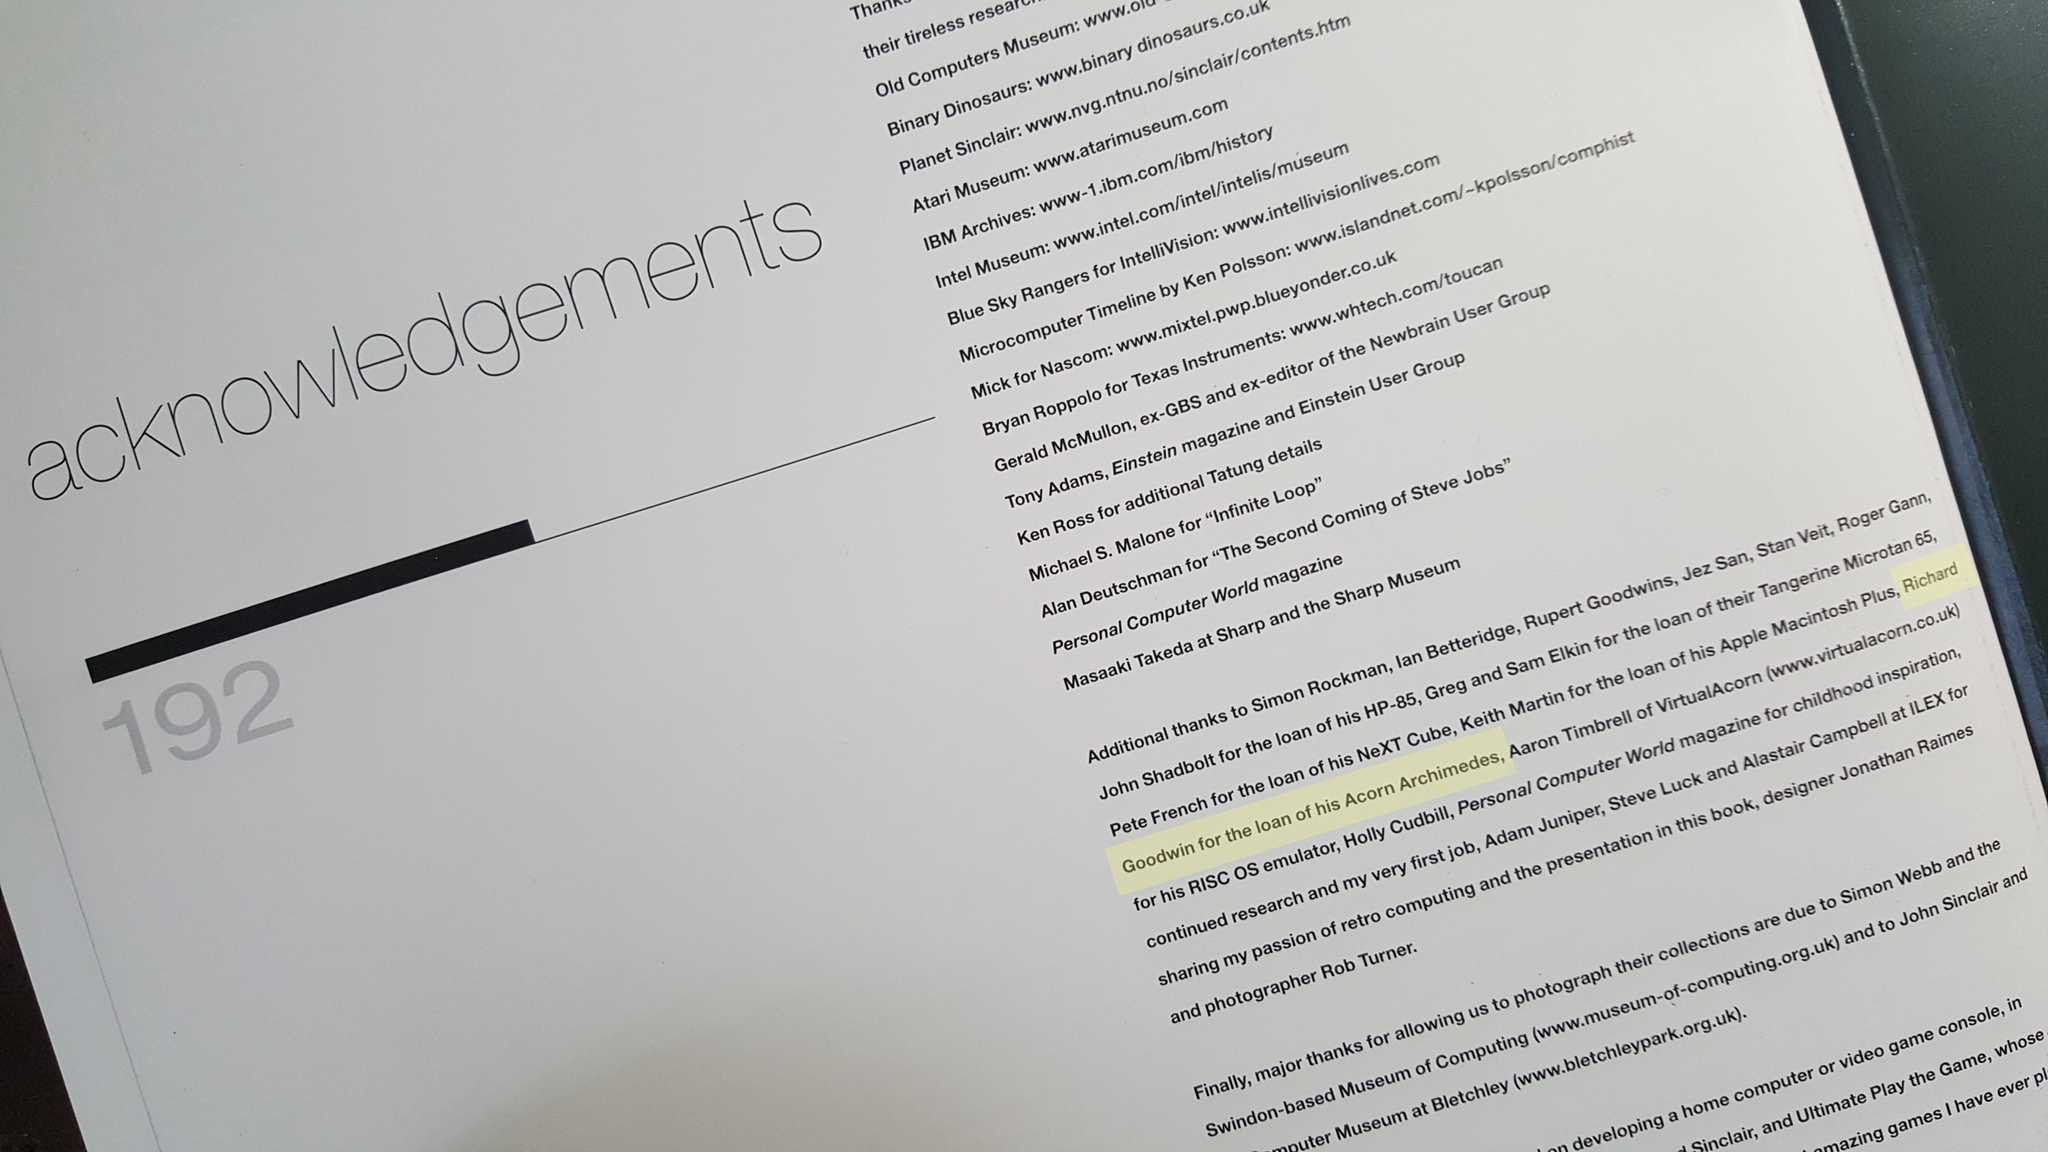 The acknowledgements page - I'm mentioned in it!